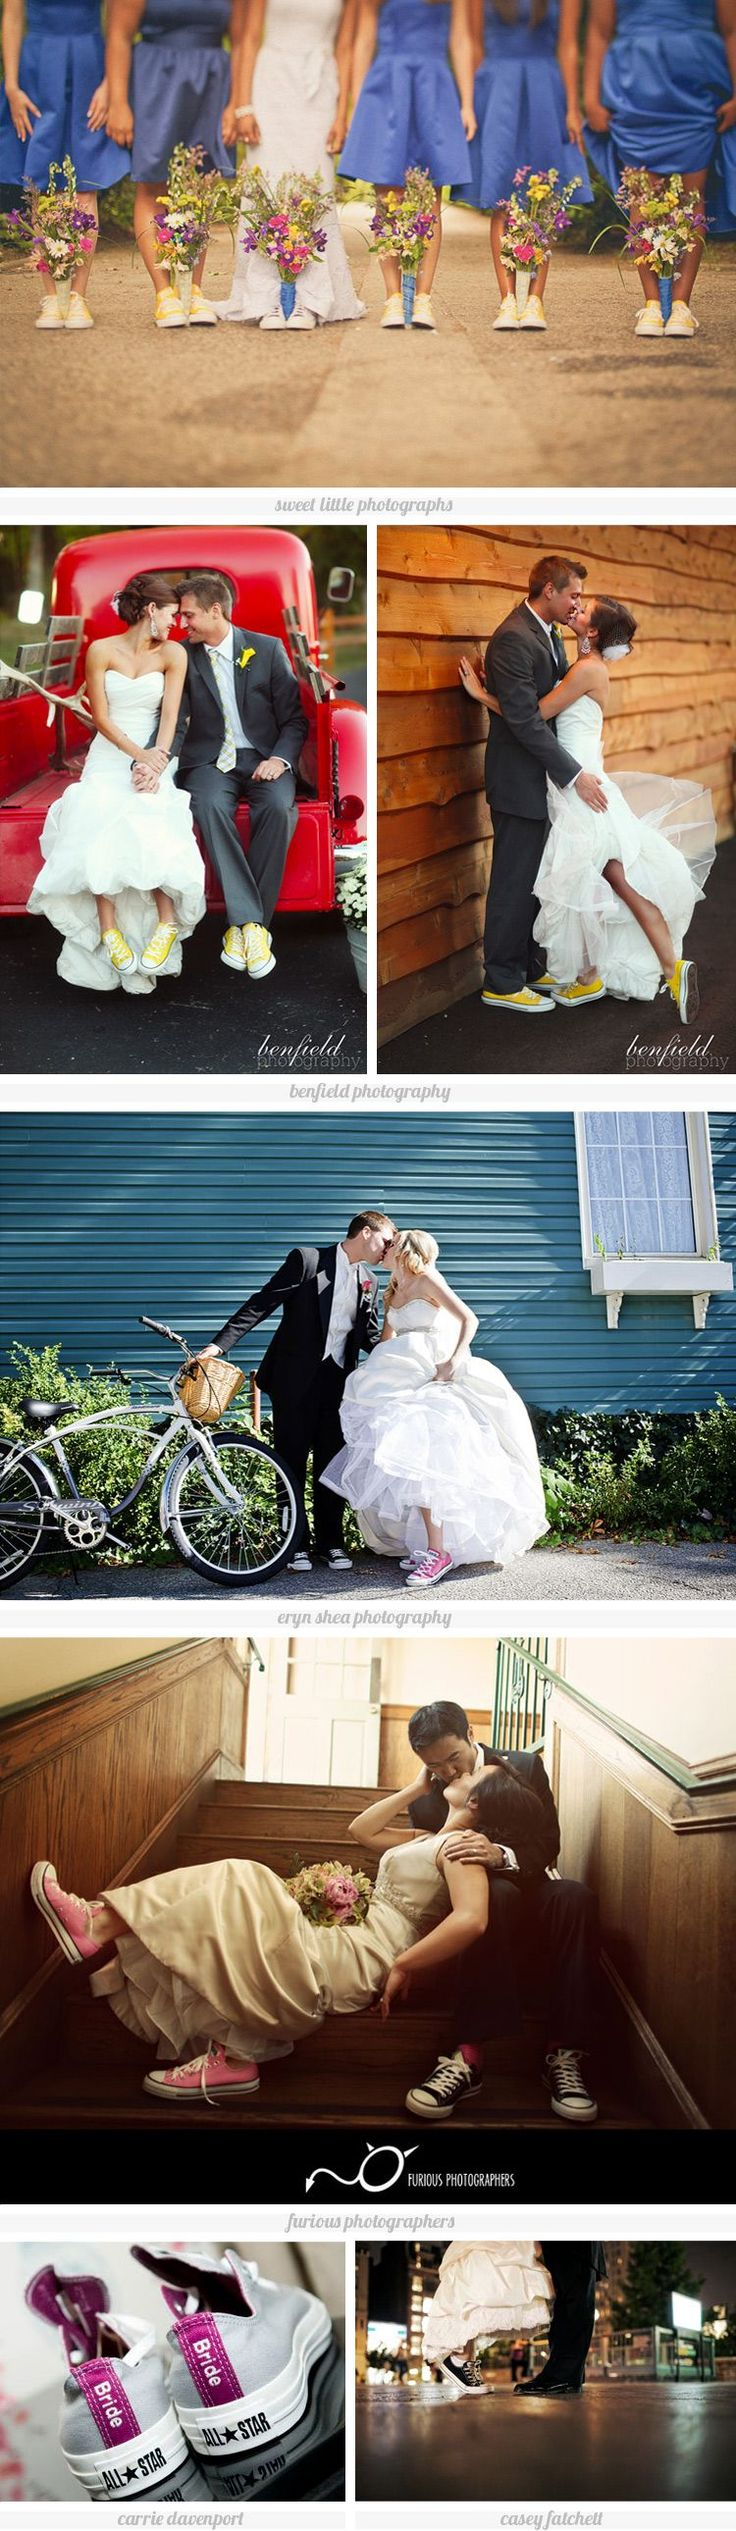 I live in chucks and combat boots. So, why would my wedding day be any different? I would do the bride ones but would get the date on the side! Obsessed.